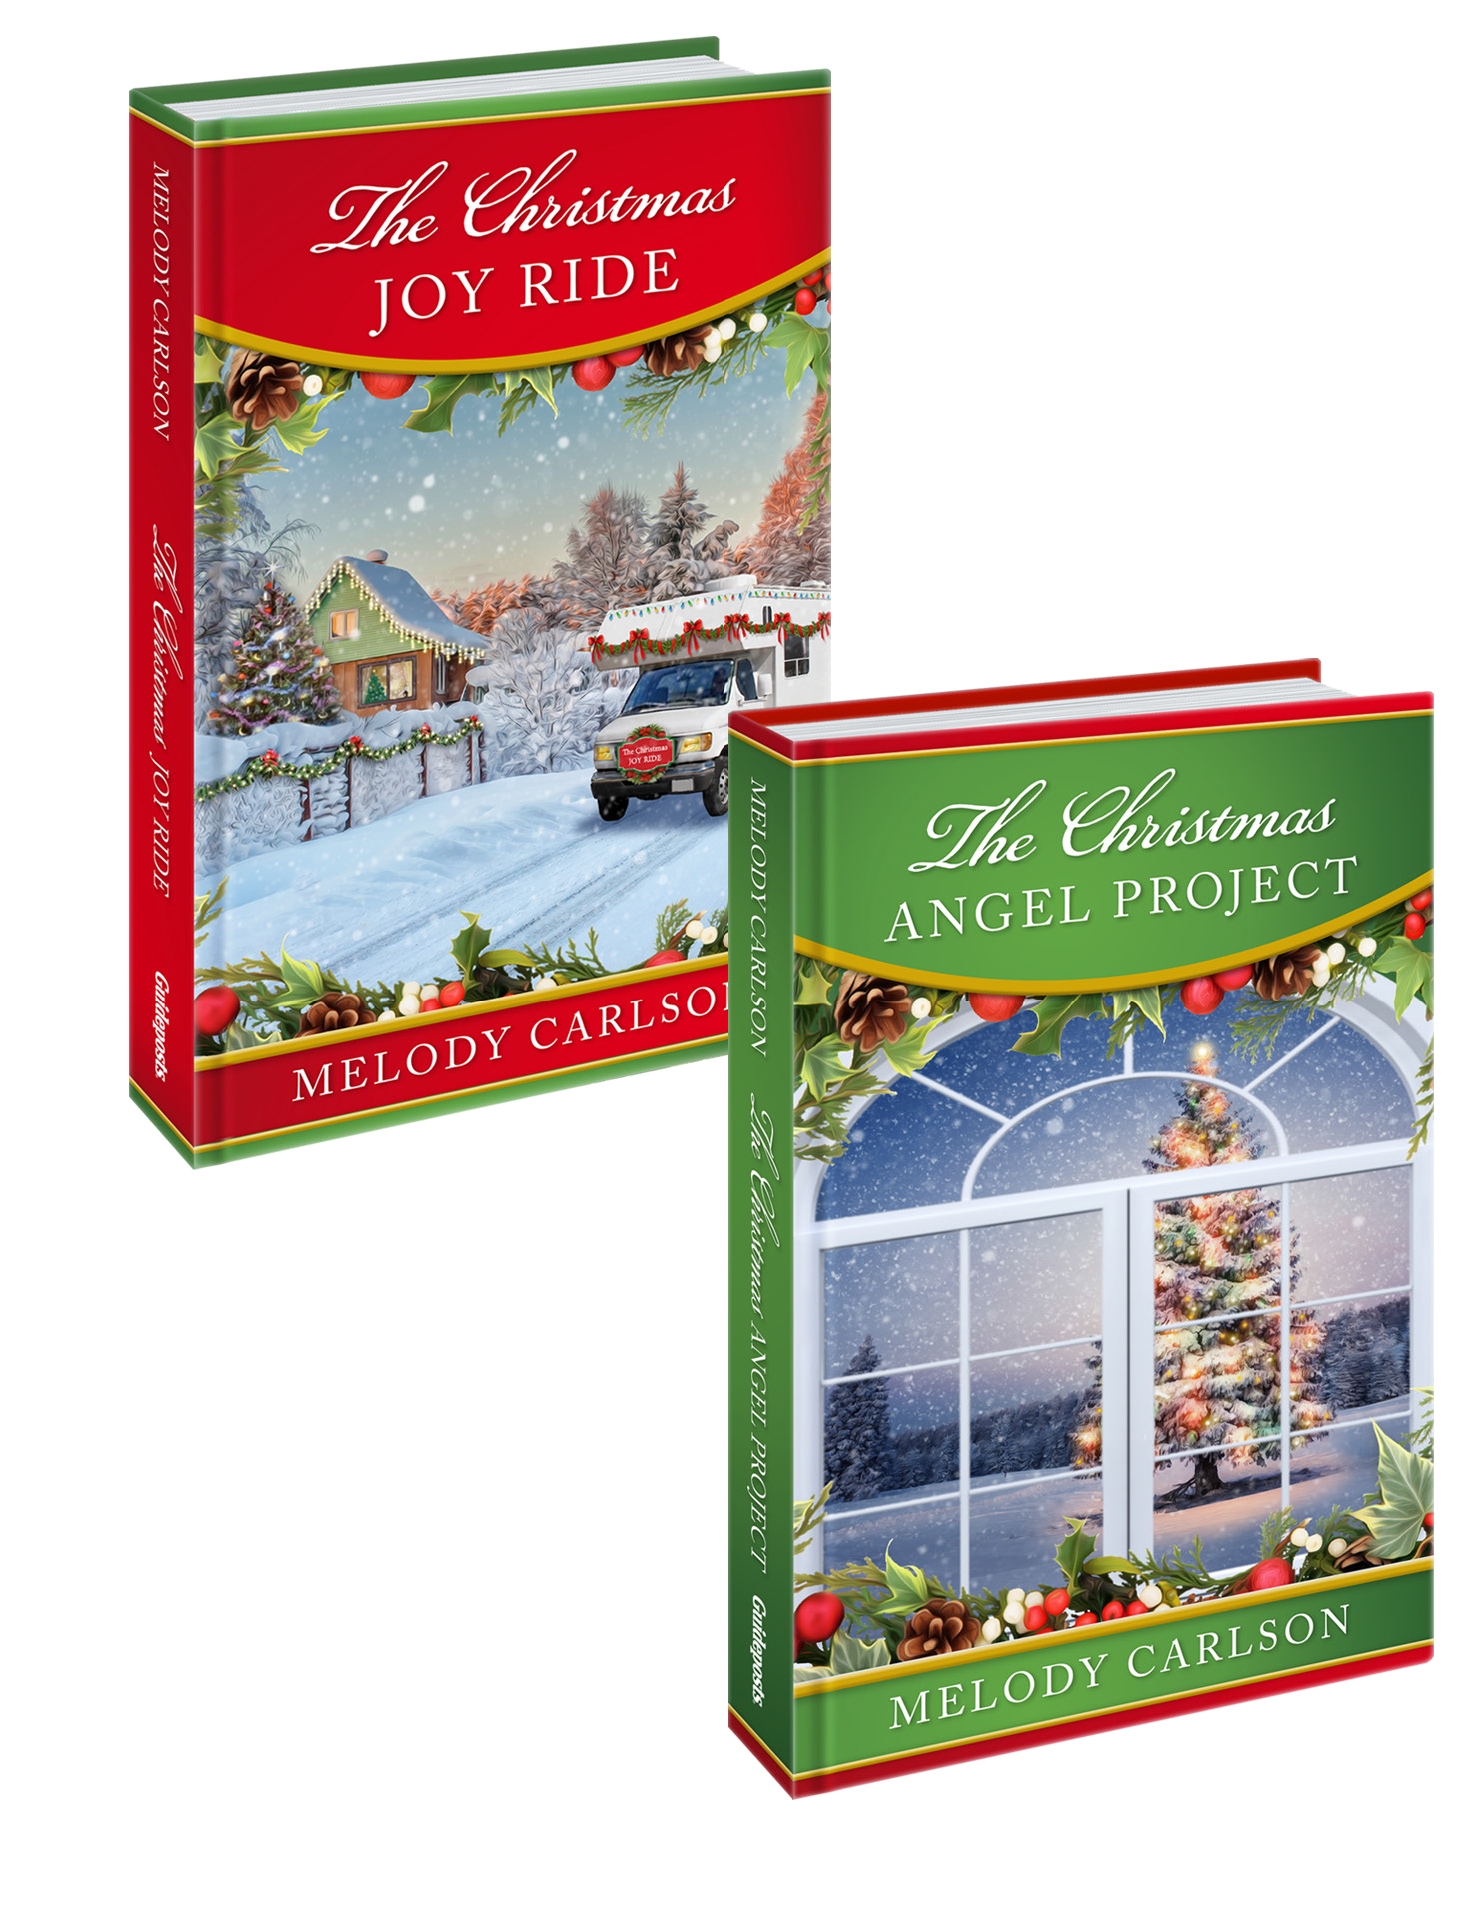 THE CHRISTMAS JOY RIDE / THE CHRISTMAS ANGEL PROJECT